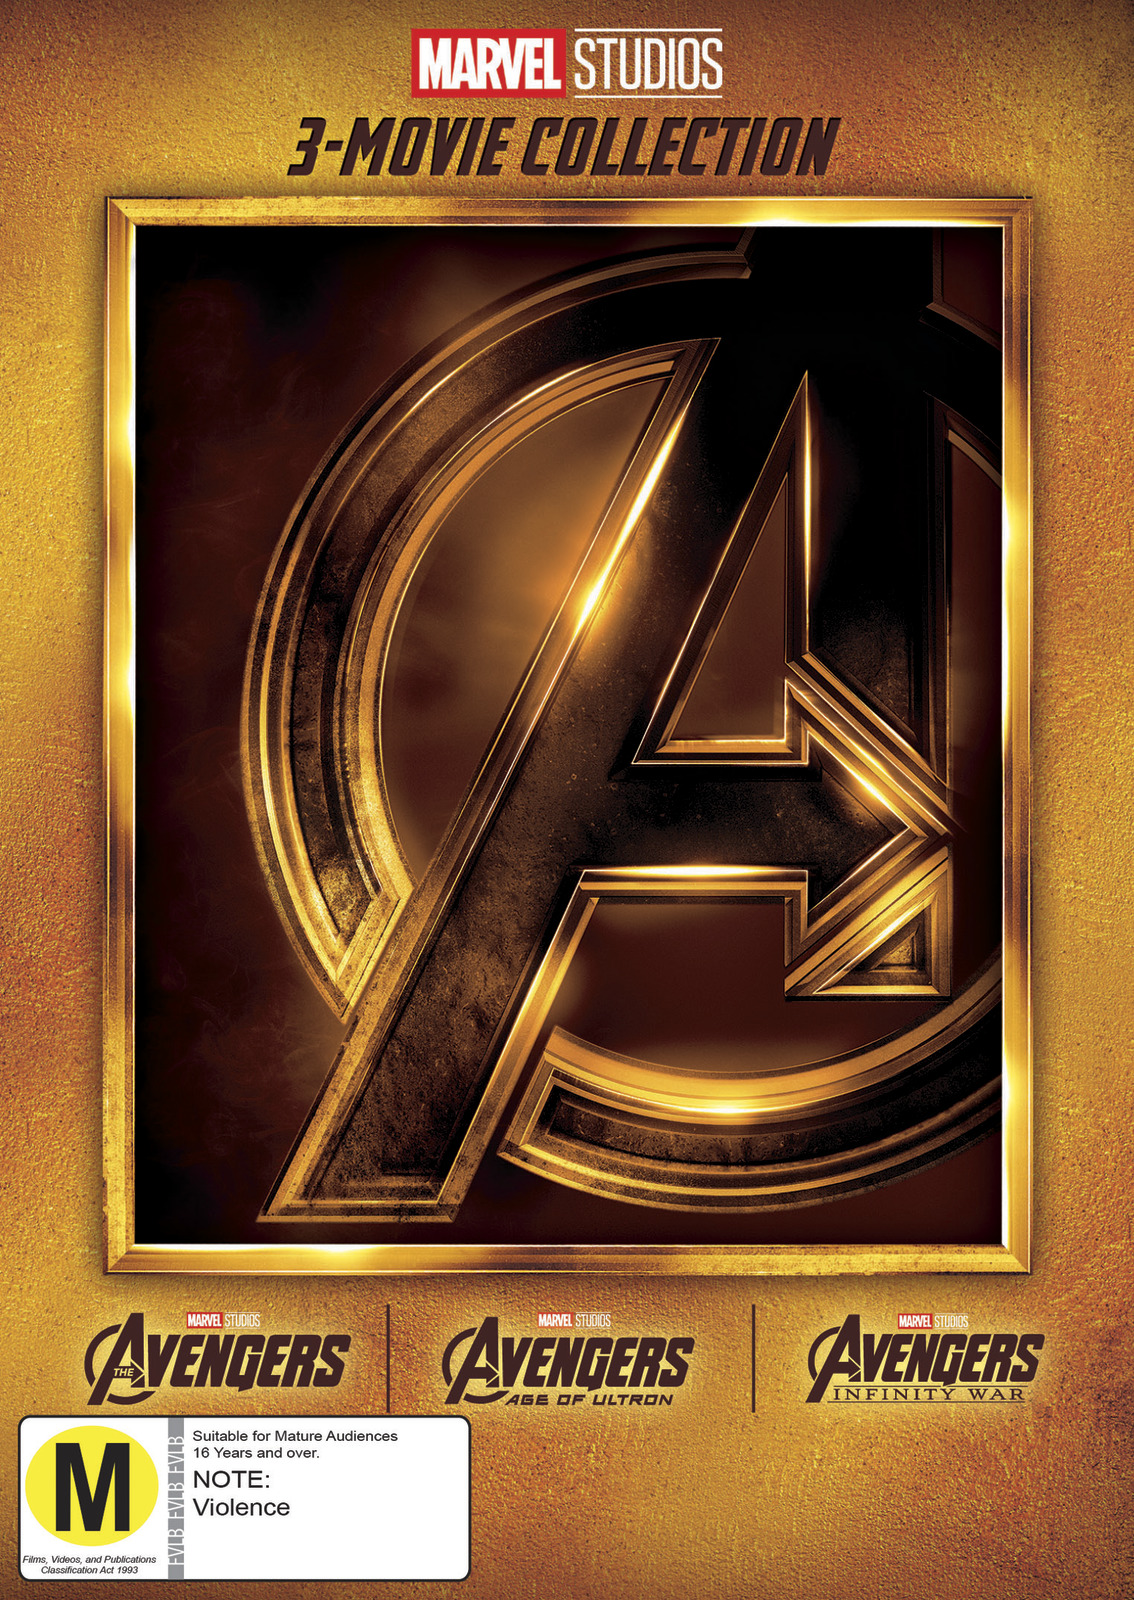 The Avengers: 3 Movie Collection image